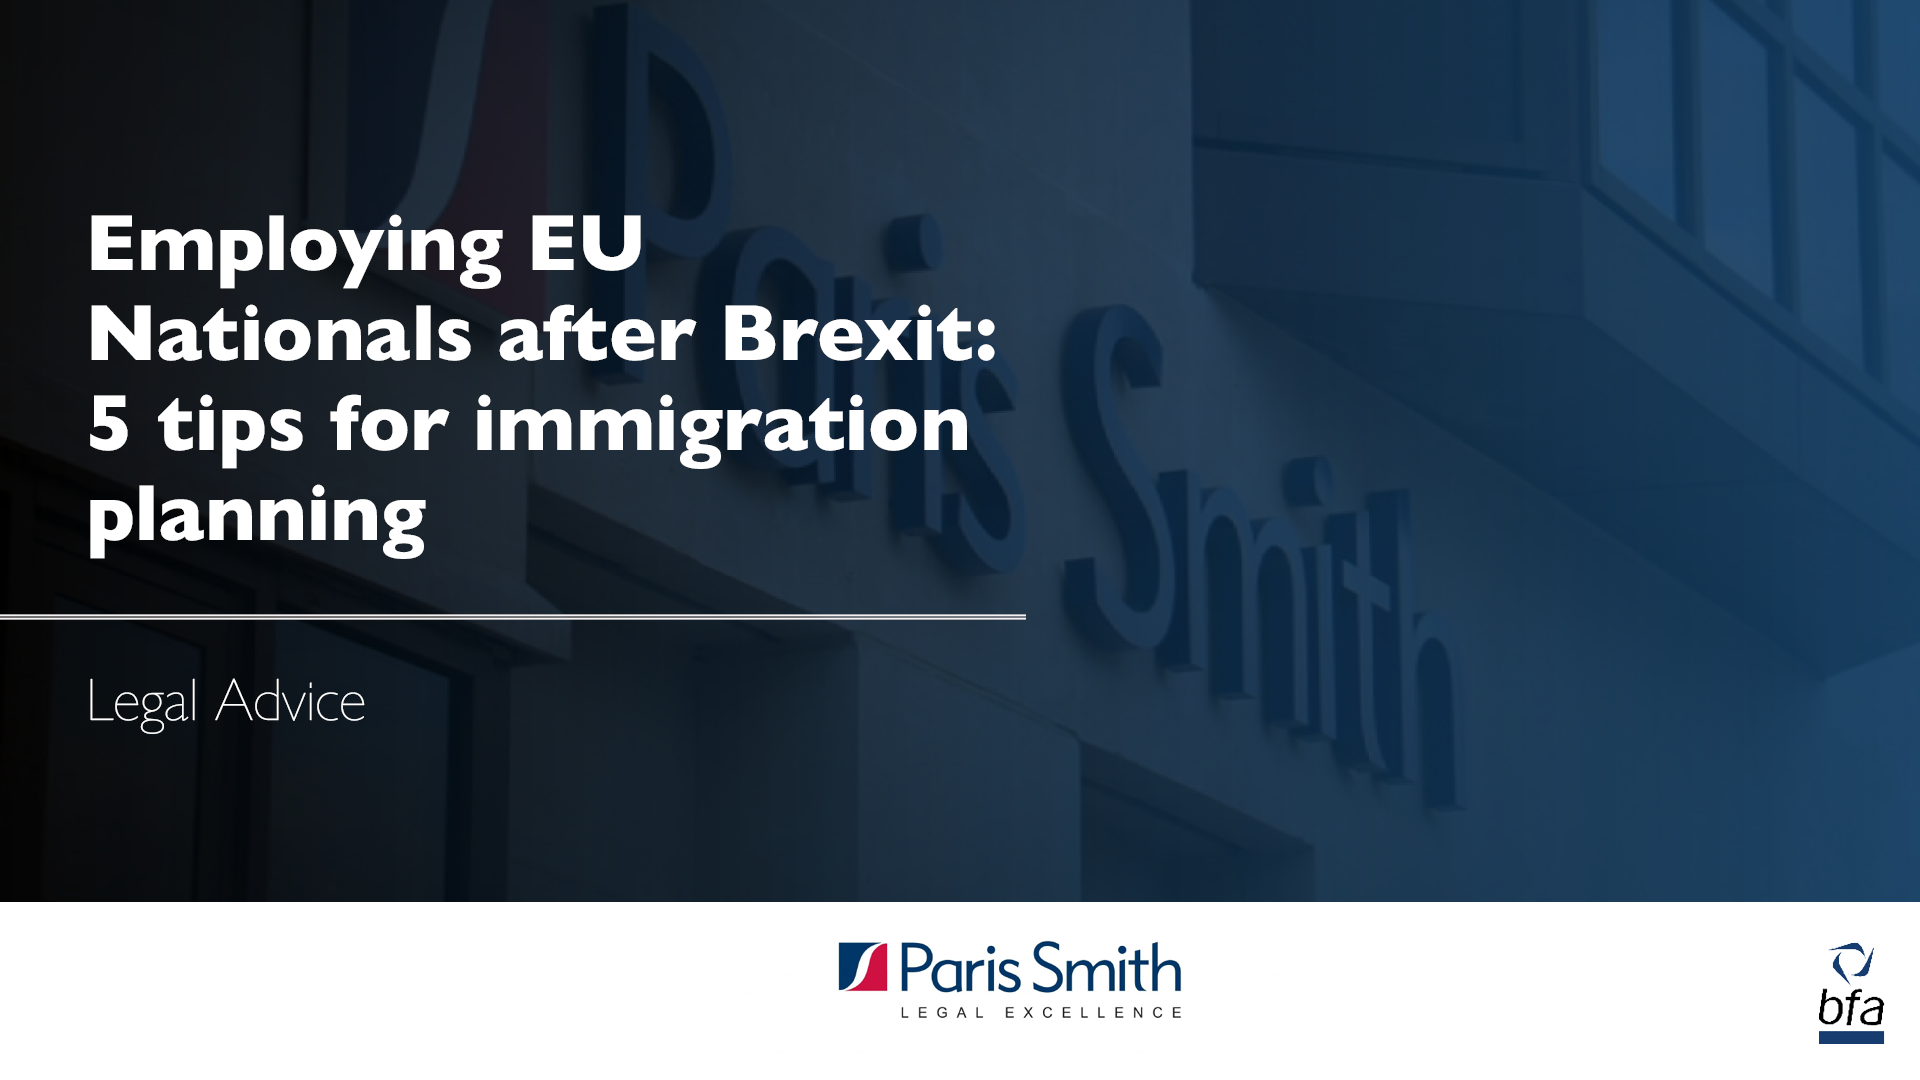 Employing EU Nationals after Brexit: 5 Tips for Immigration Planning in 2020